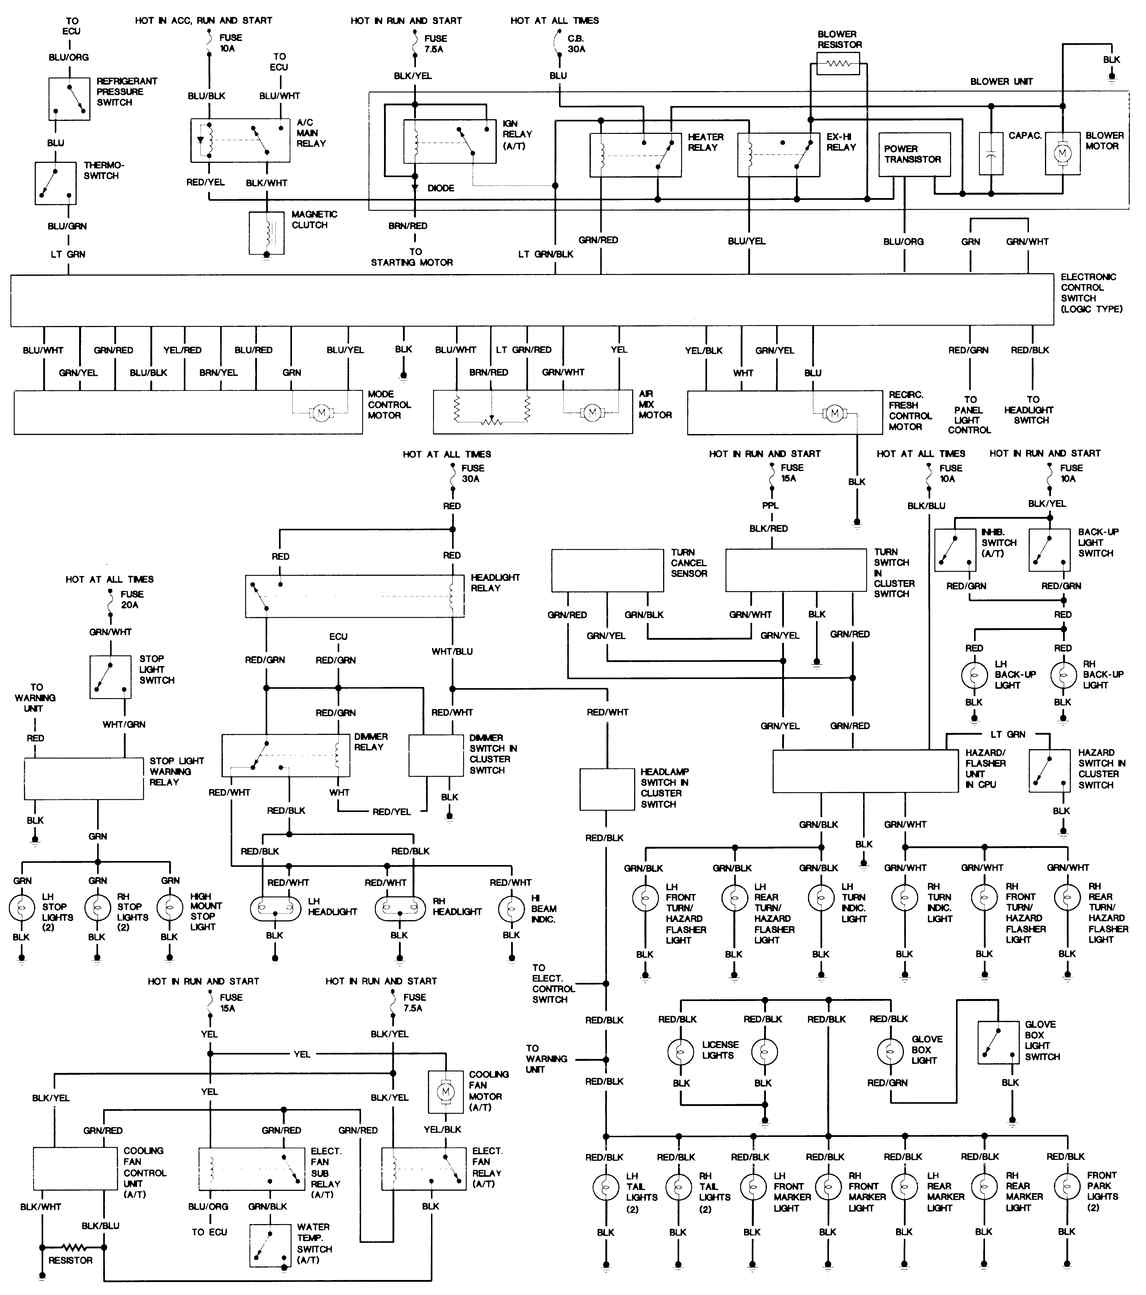 Rx7 Wiring Diagram -Phase Diagram Test Questions | Begeboy Wiring Diagram  Source | 1980 Mazda Rx 7 Wiring Schematics |  | Begeboy Wiring Diagram Source